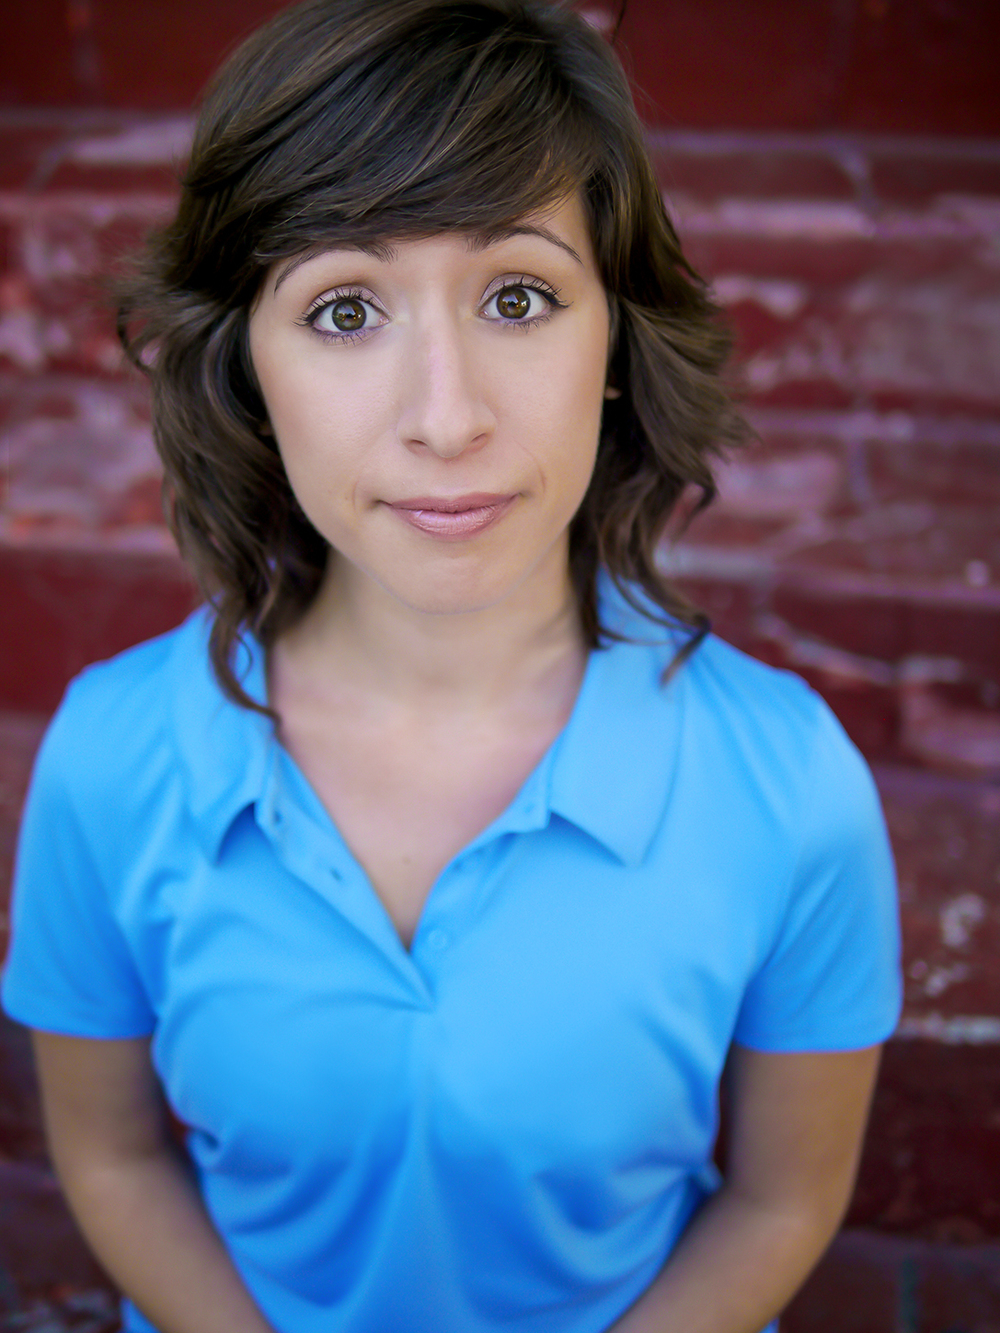 Kyla headshot quirky polo.jpg